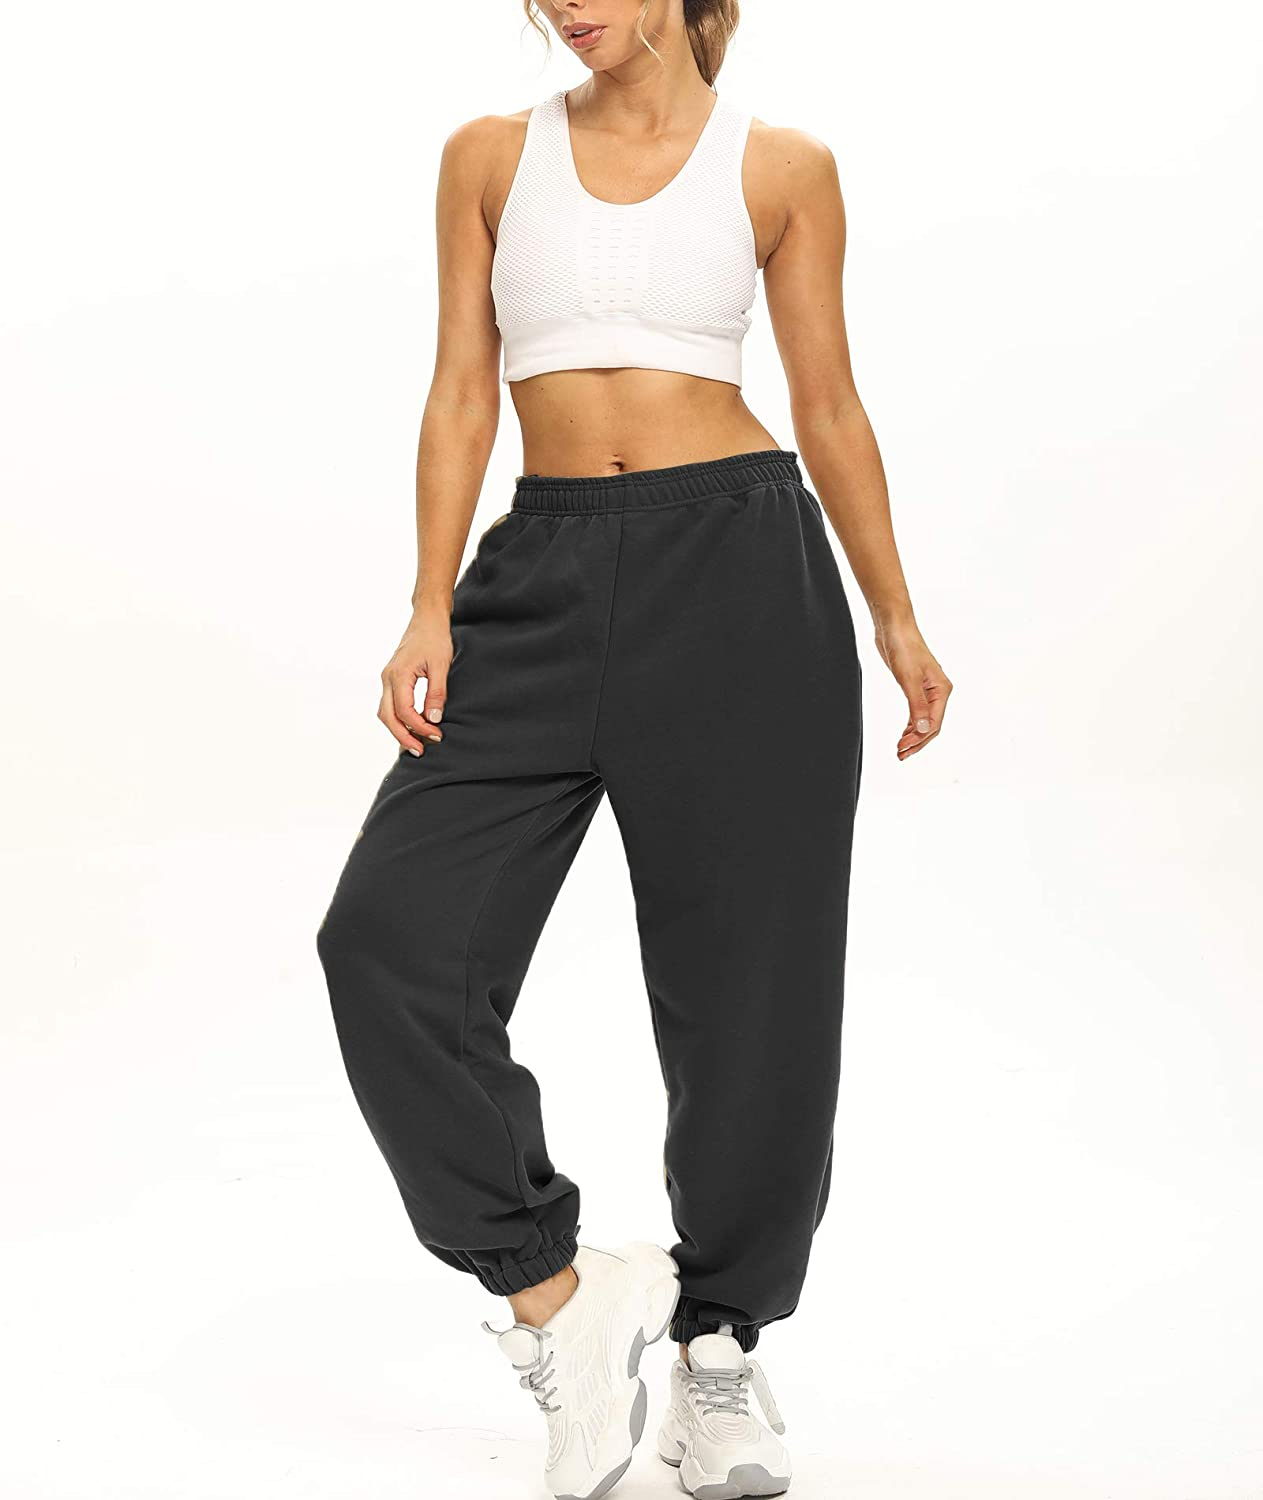 Ausook Womens Sweatpants for Women with Pockets Womens Jogger Sweatpants Women Cotton Womens Joggers for Women